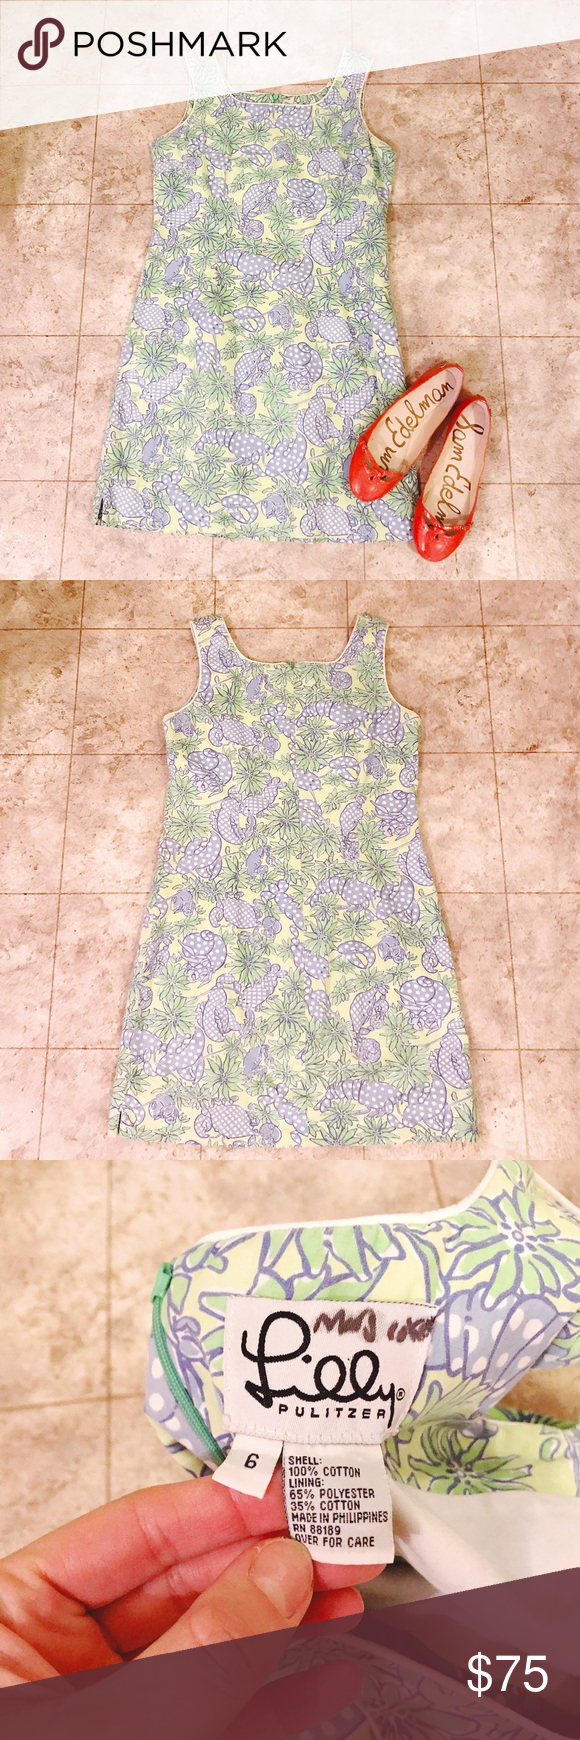 Lilly pulitzer seashell dress wedding guest dress wedding guests